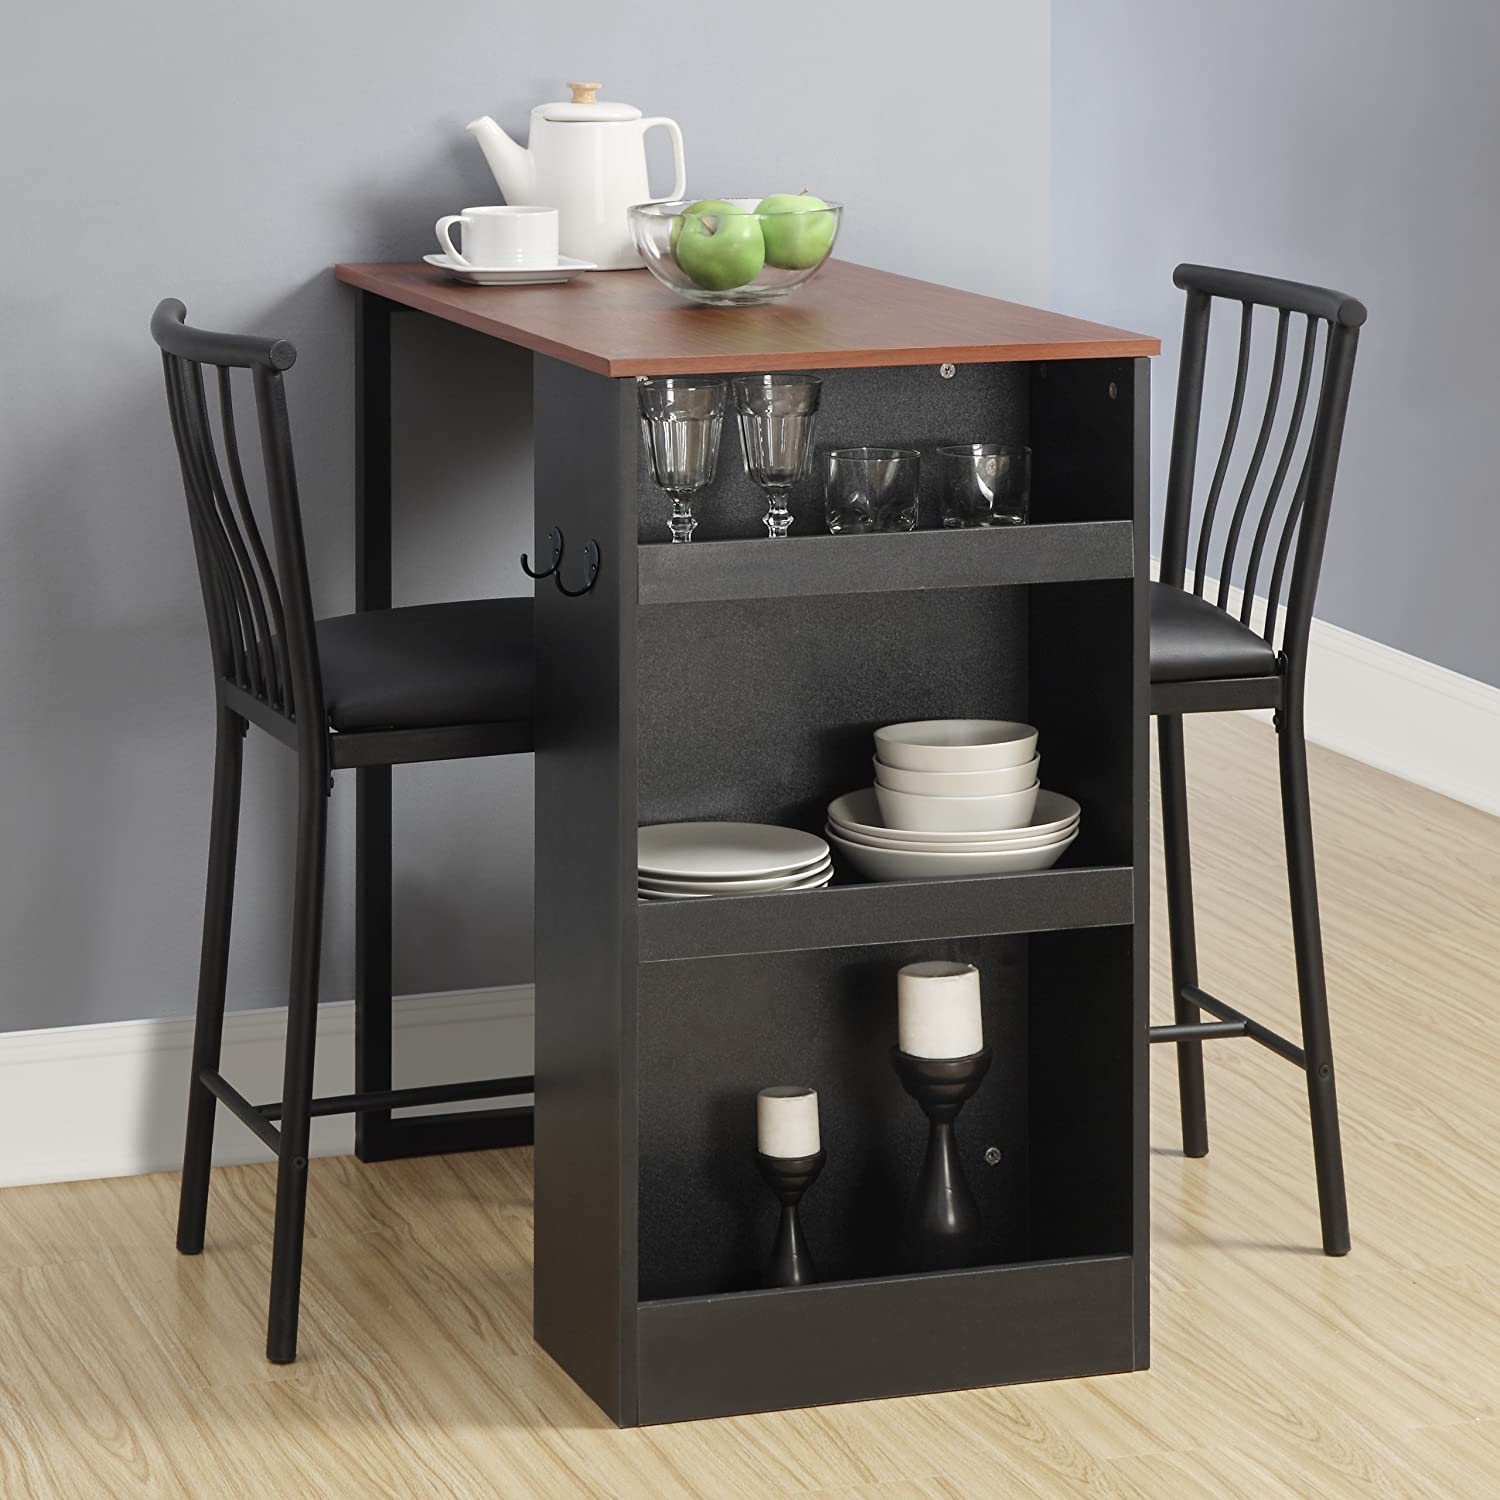 Living Room Bar Sets Breakfast Table Set Ebay Dining Table Sets Home Small Breakfast